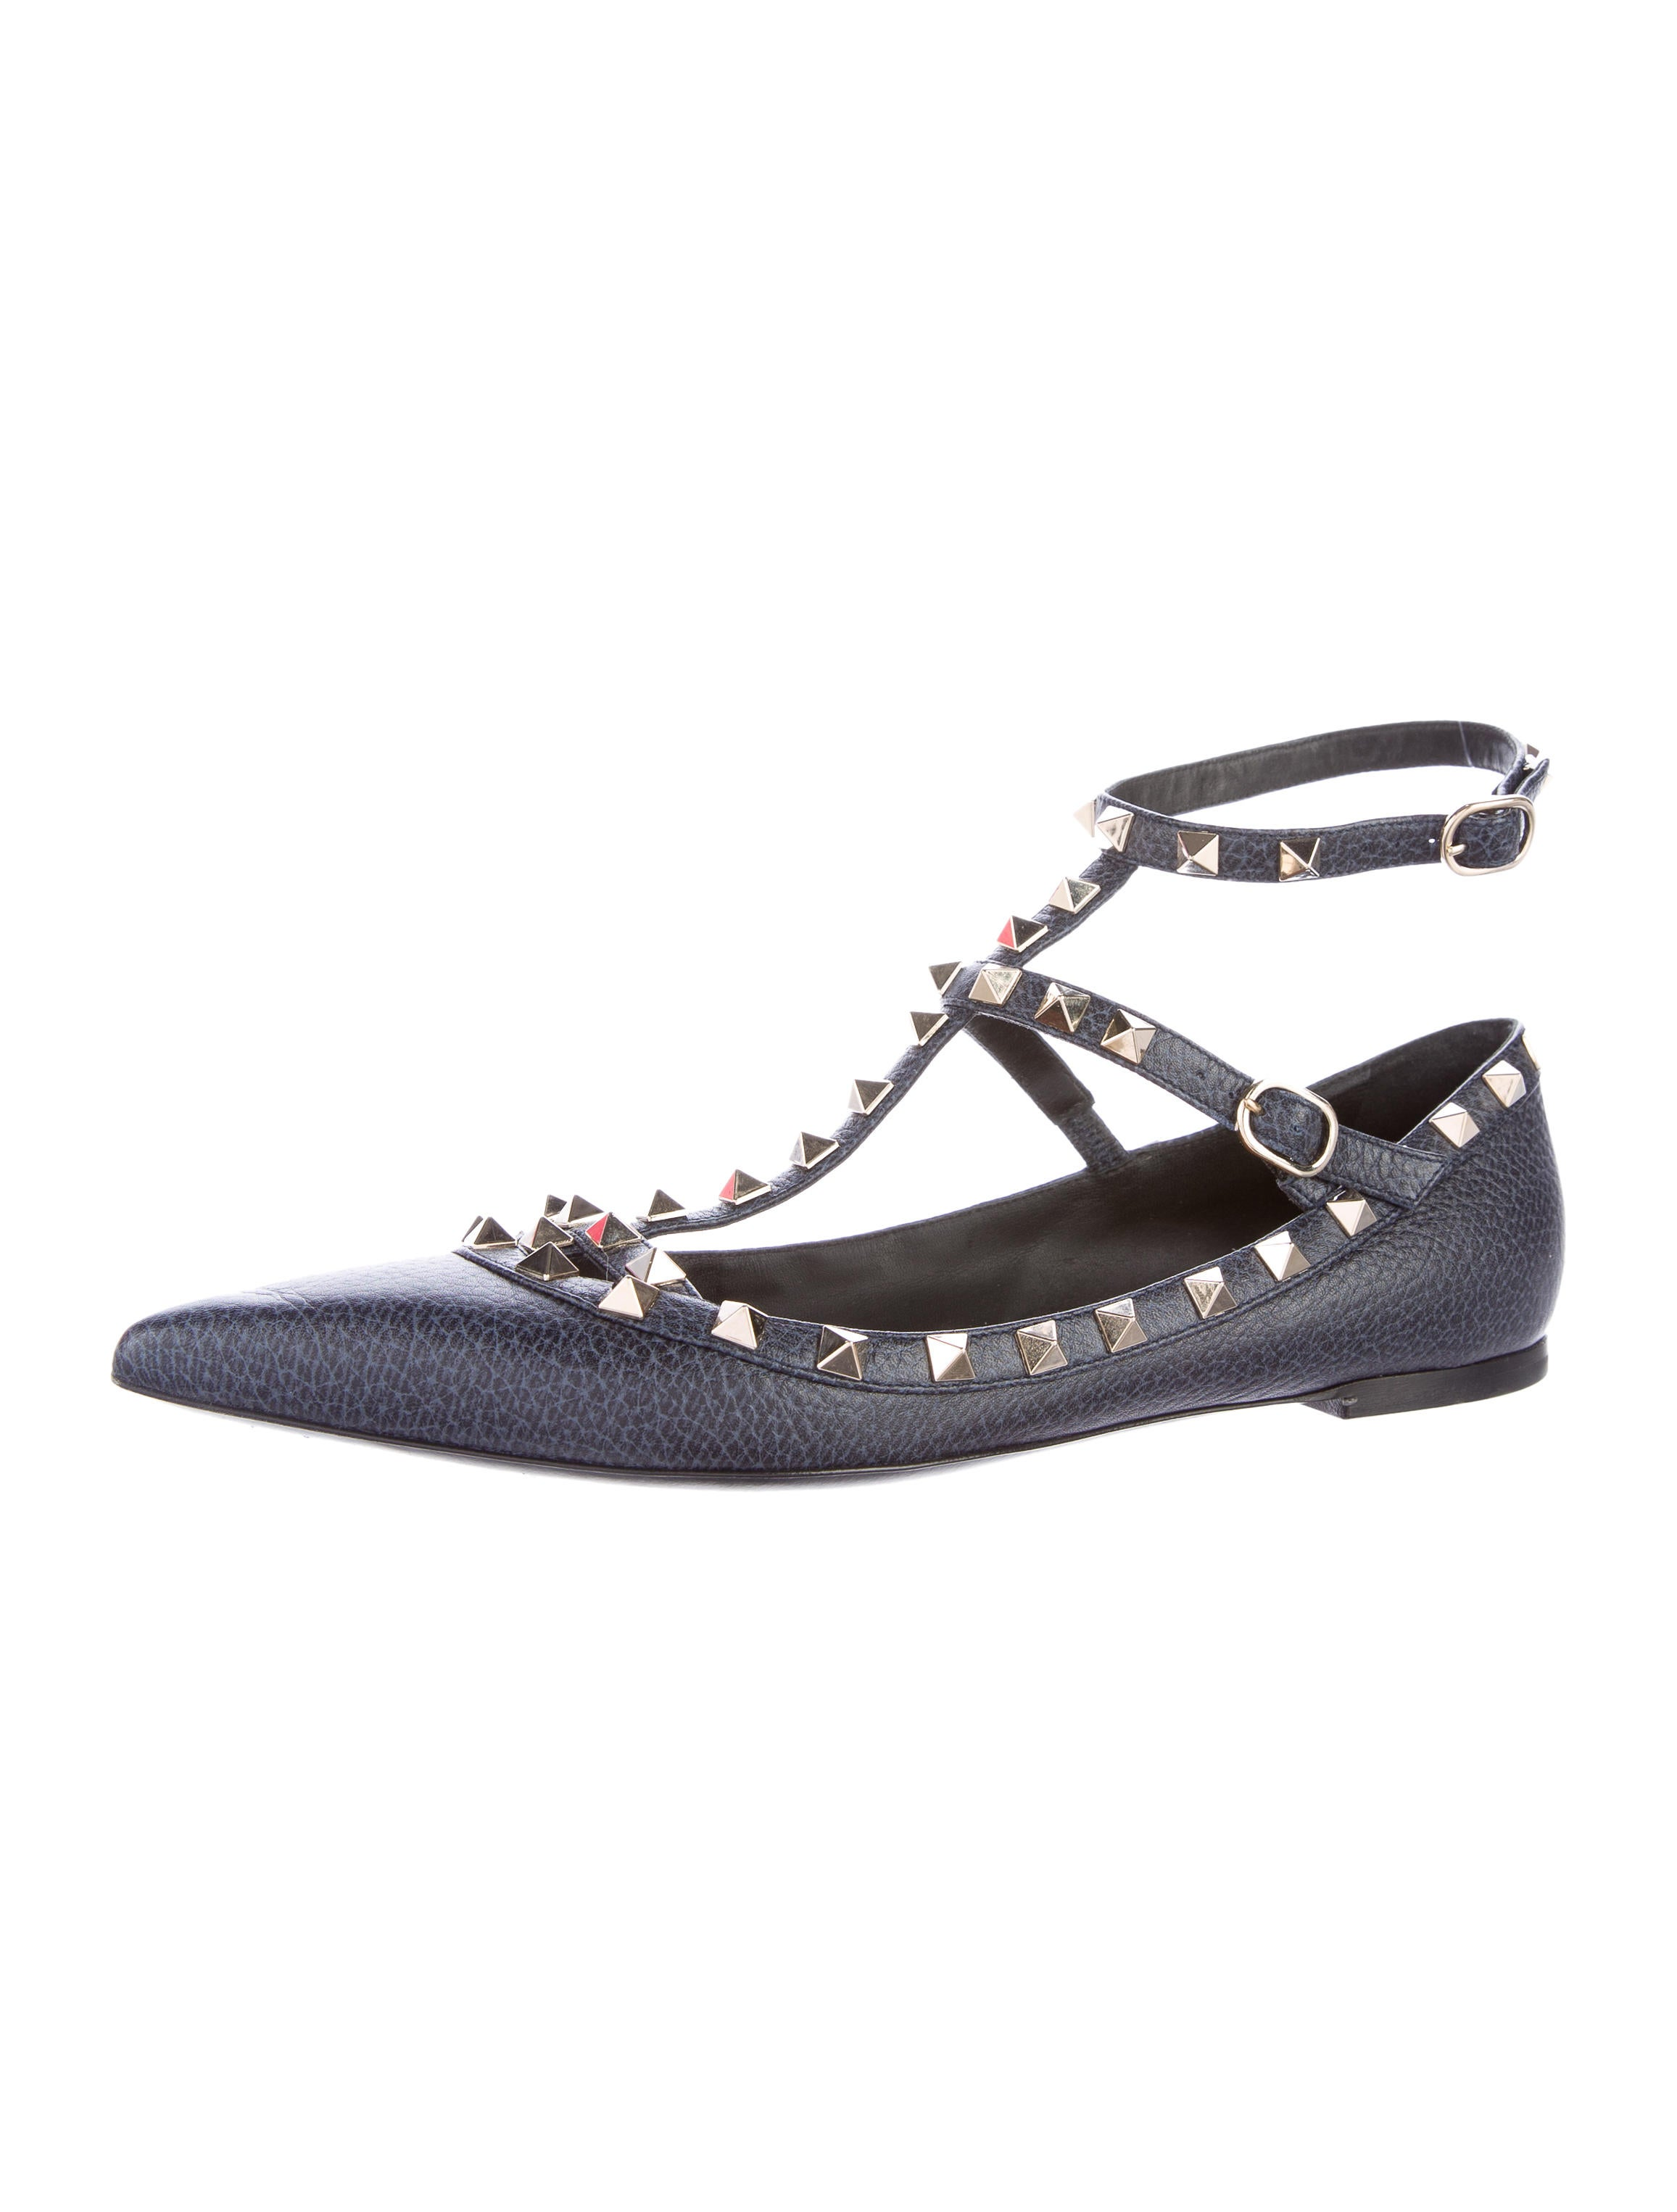 valentino rockstud ballerina flats shoes val57885 the realreal. Black Bedroom Furniture Sets. Home Design Ideas